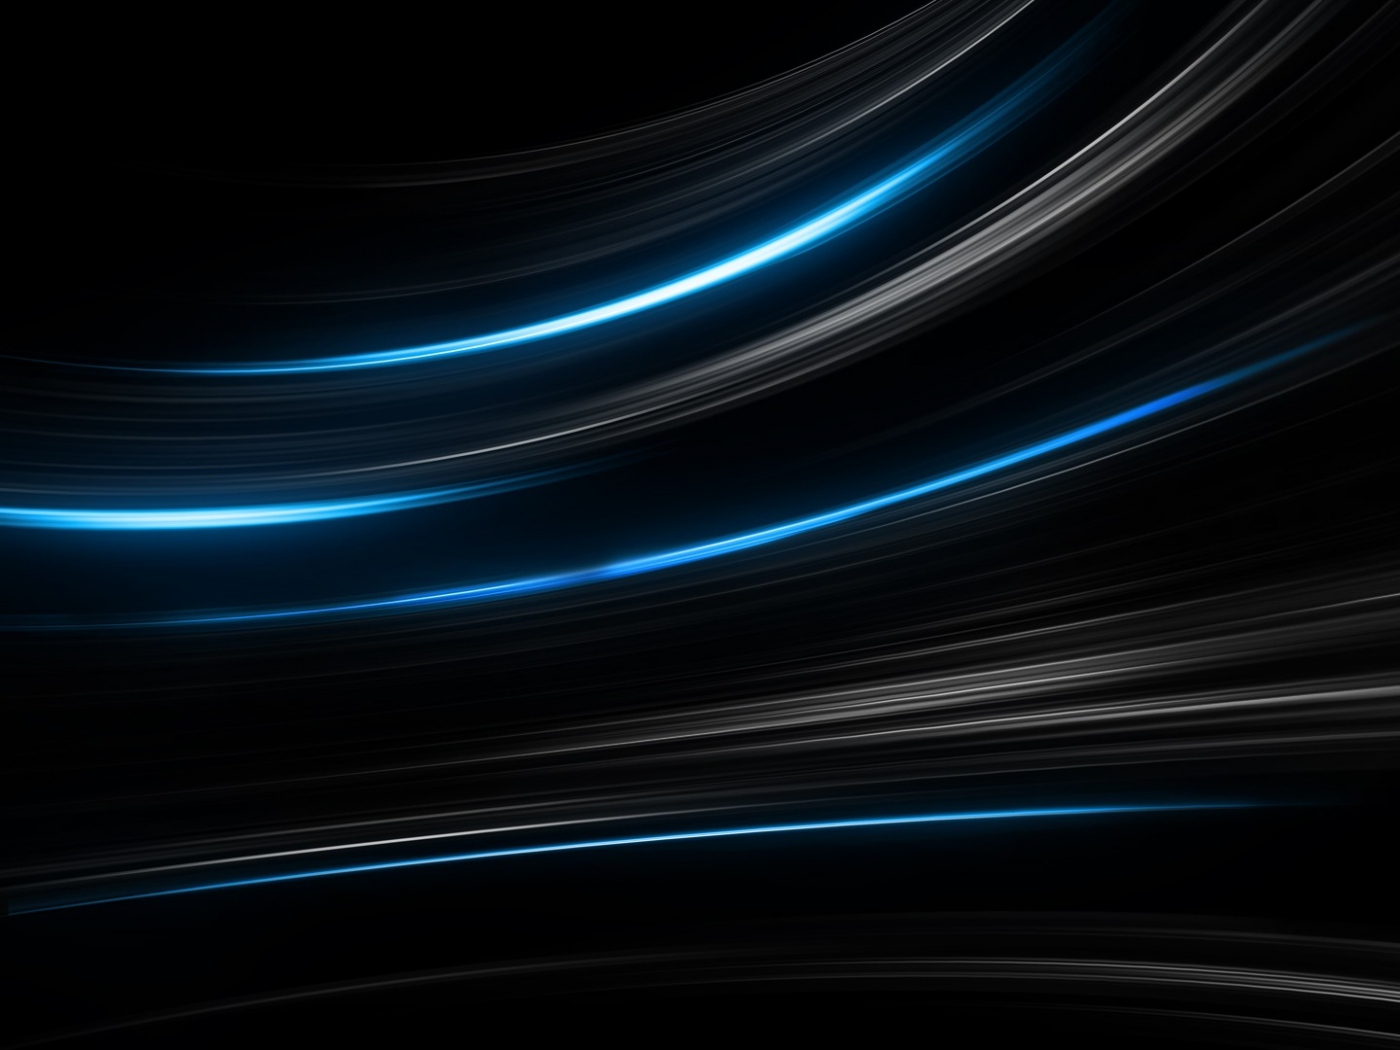 Download Wallpaper 1400x1050 black, blue, abstract, stripes 1400x1050 ...